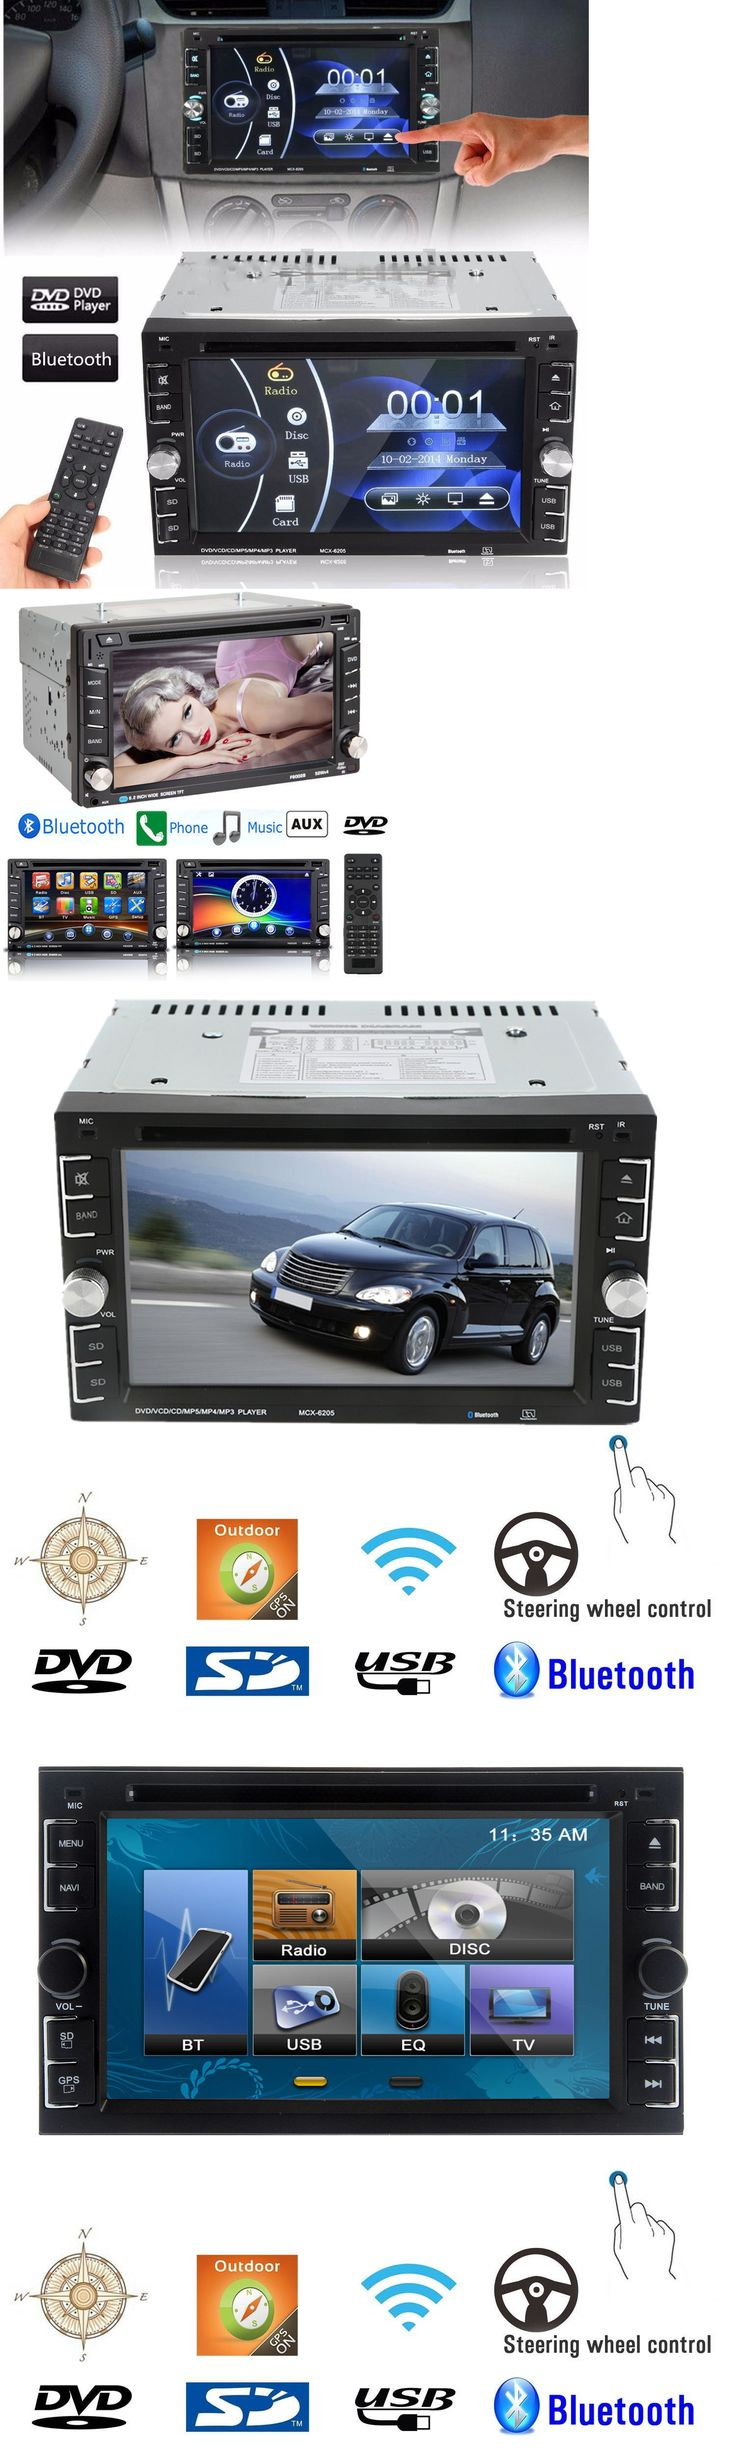 Vehicle electronics and gps bluetooth car stereo dvd cd player 6 2 double 2din radio in